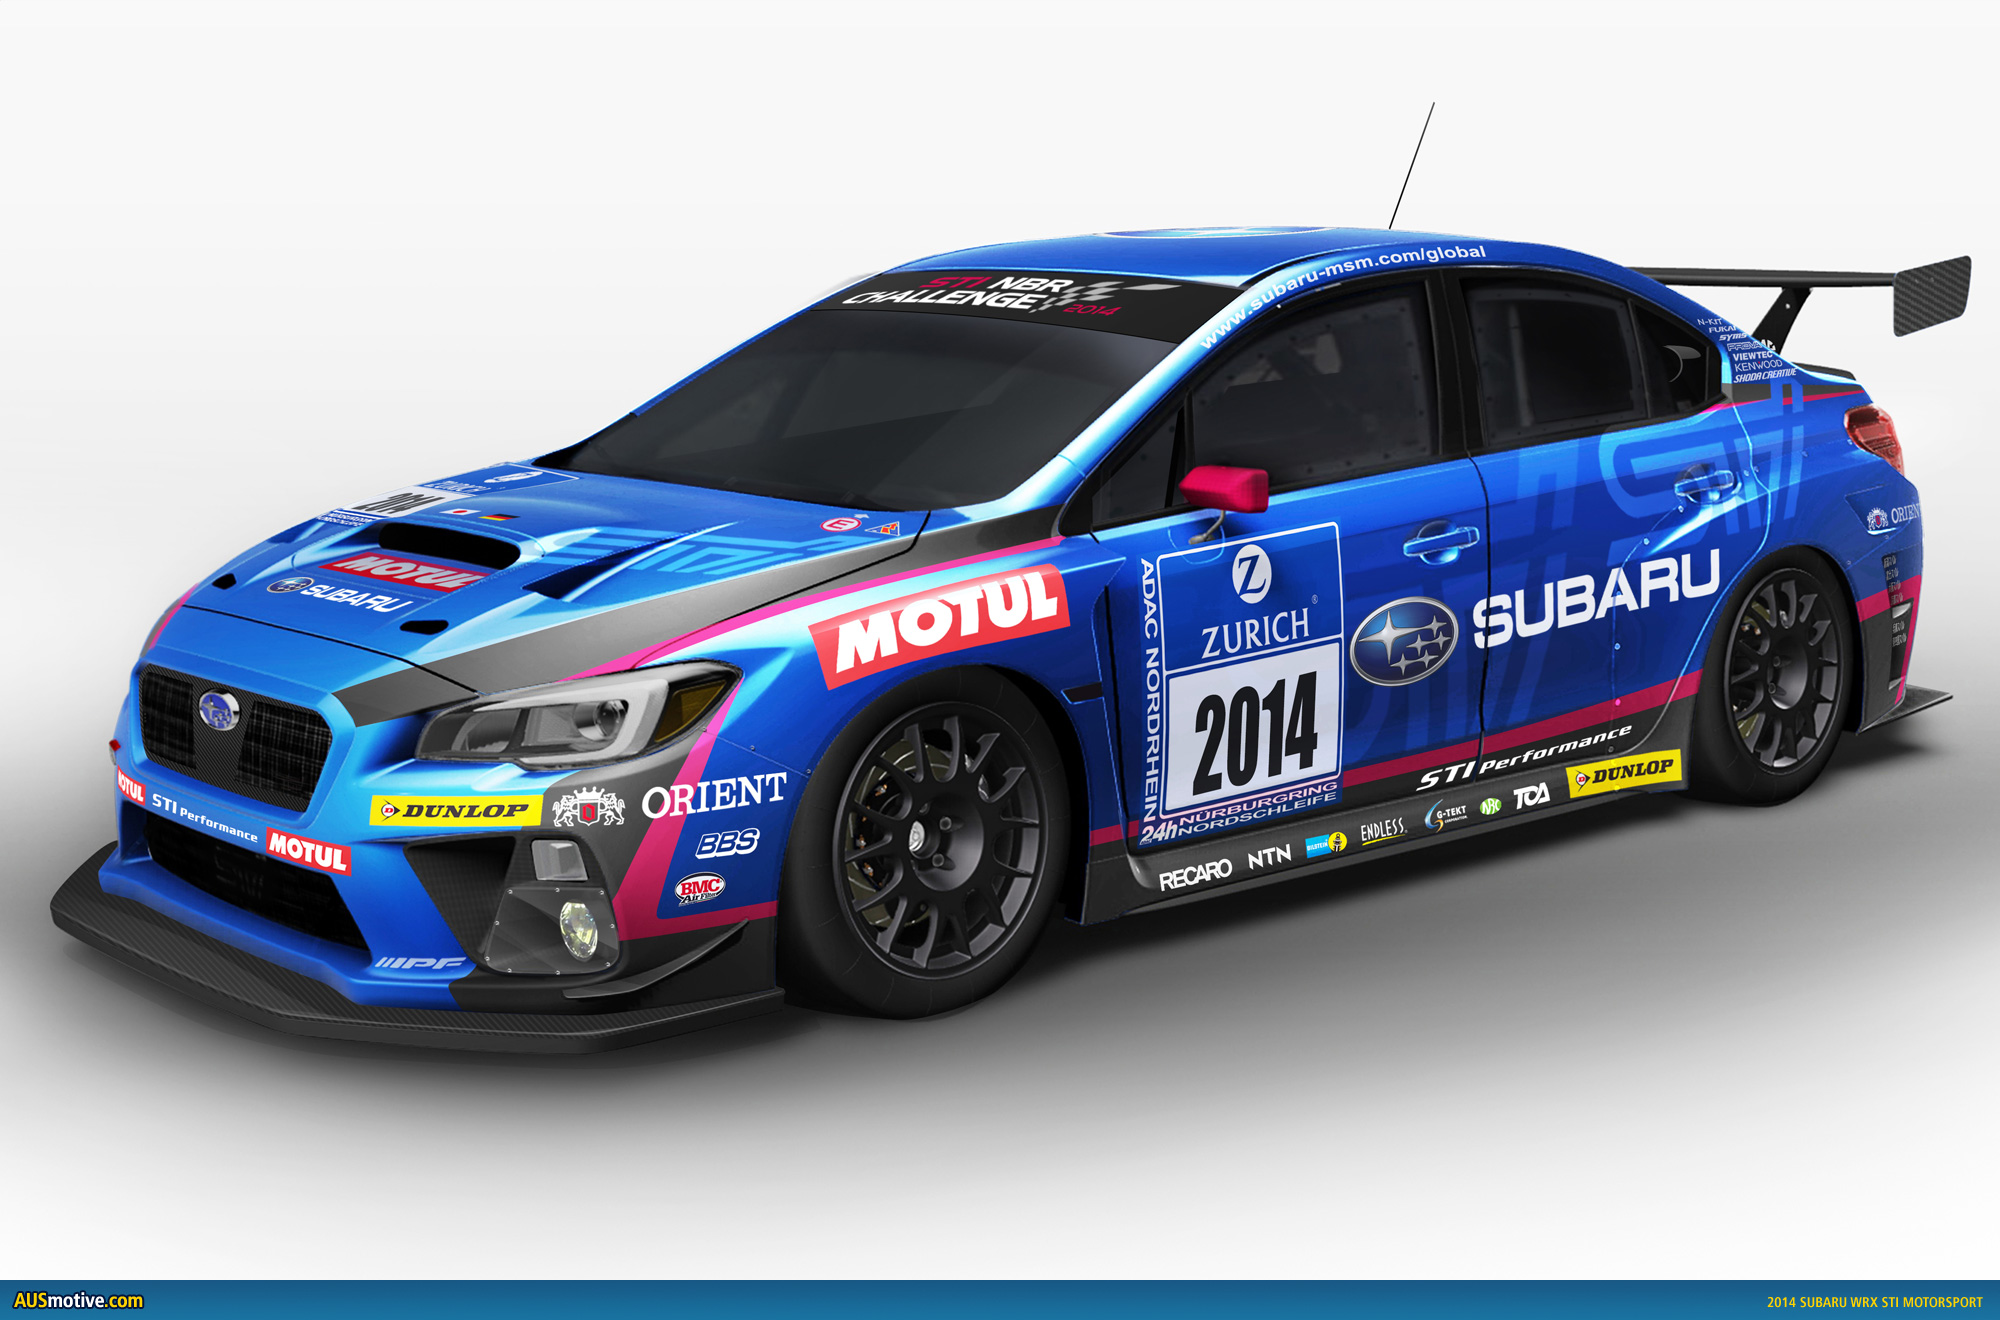 Subaru St Louis >> Sticker decal dilemma - do or don't? - Page 2